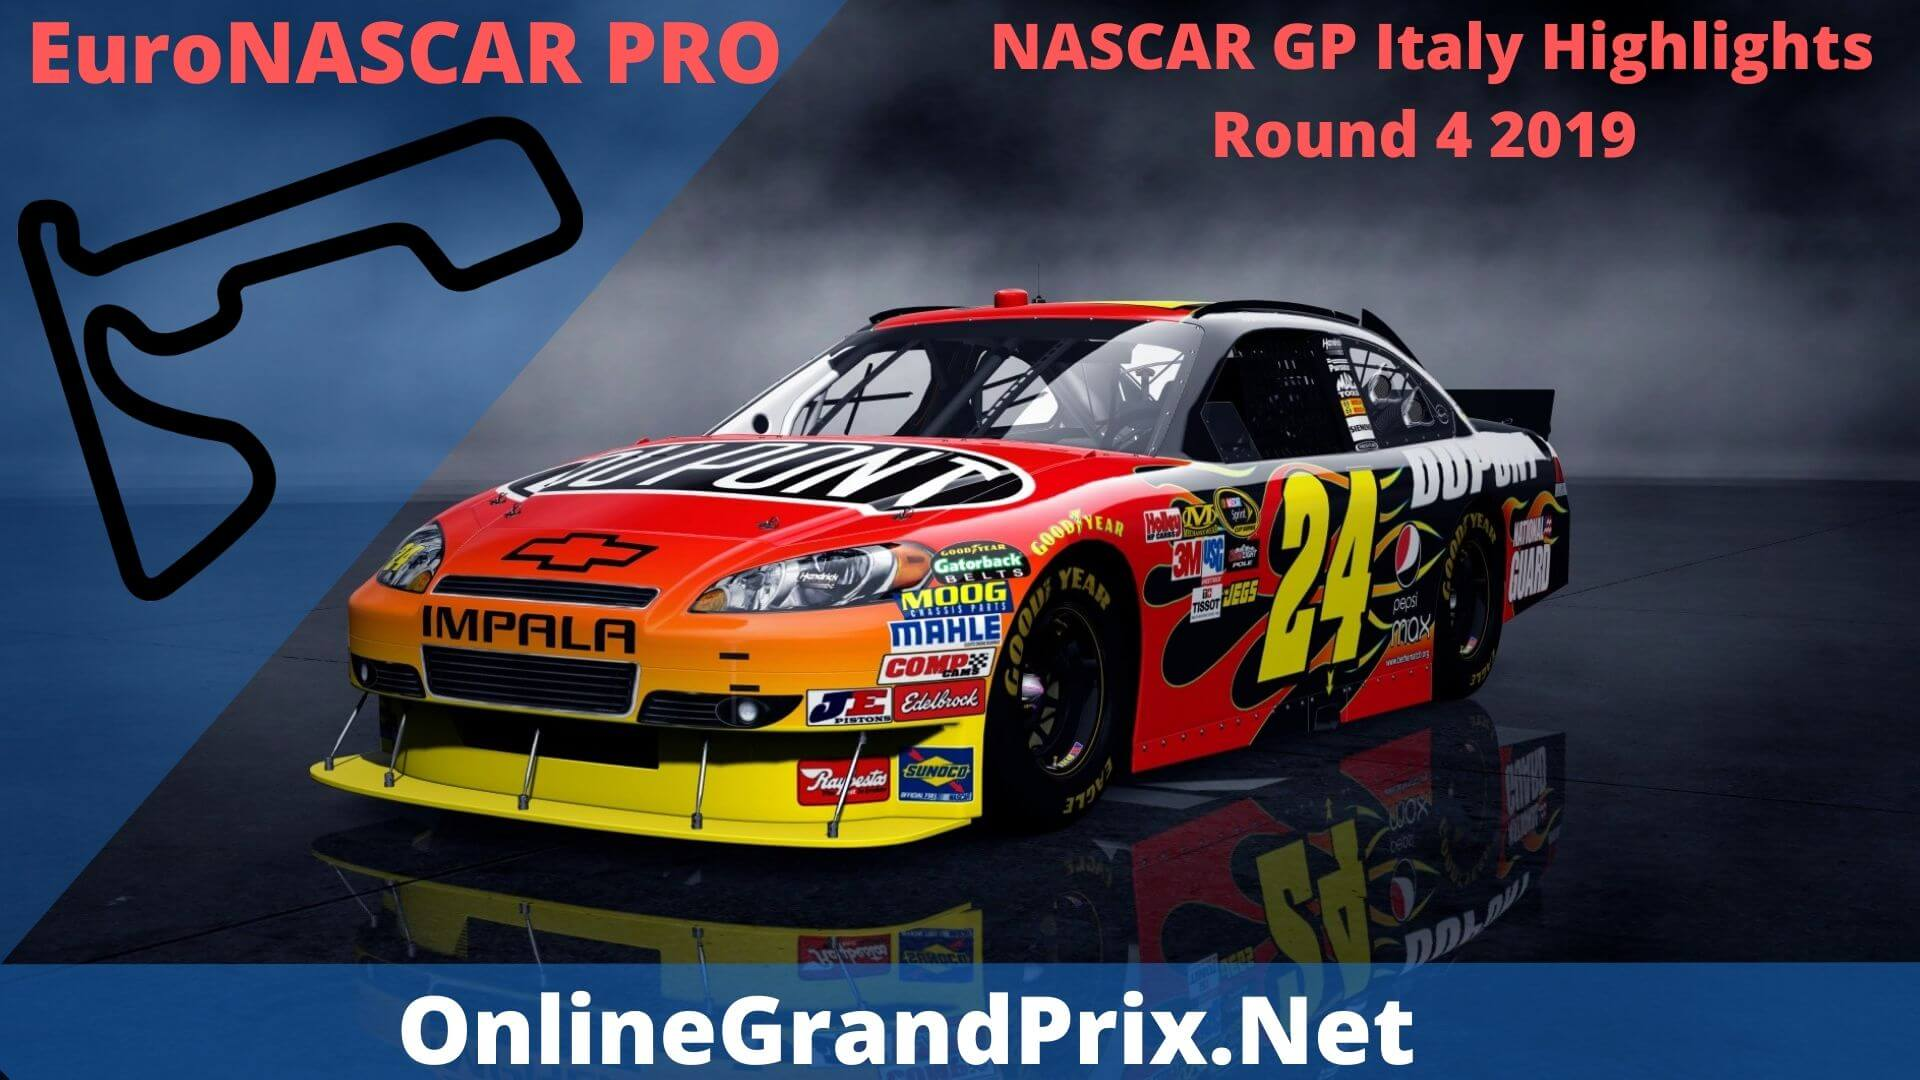 NASCAR GP Italy Round 4 Highlights 2019